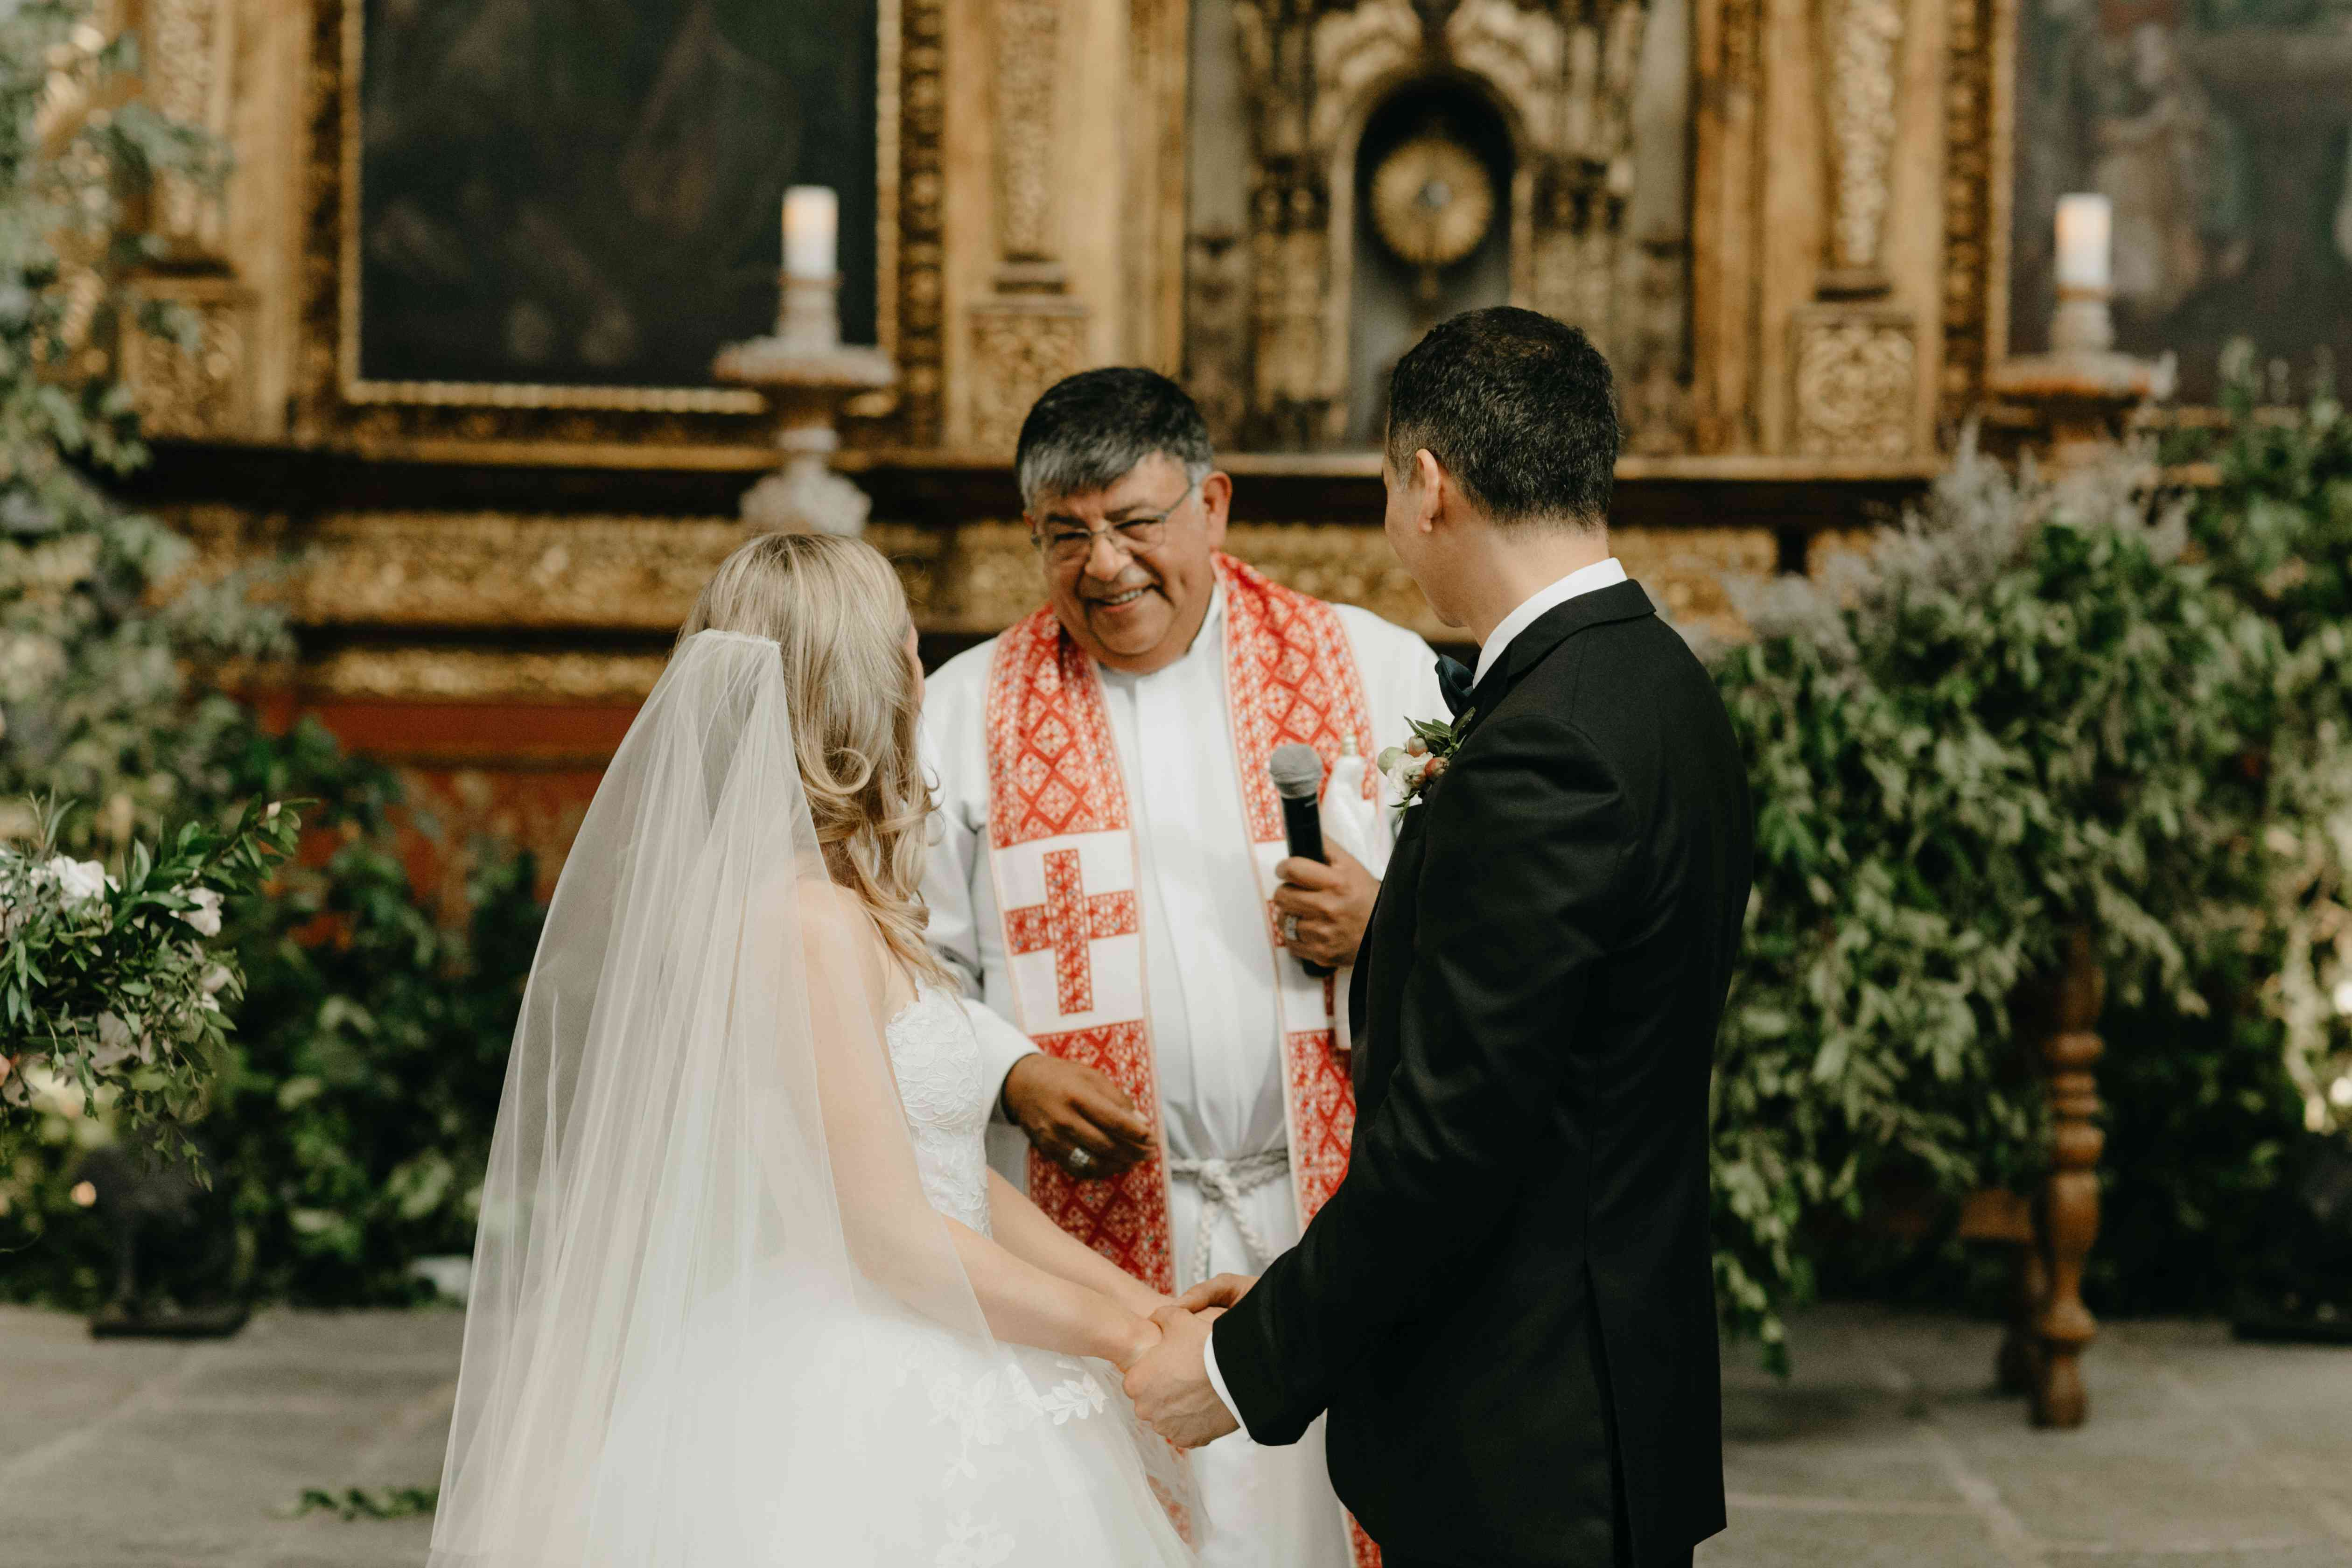 The Nuptial Blessing